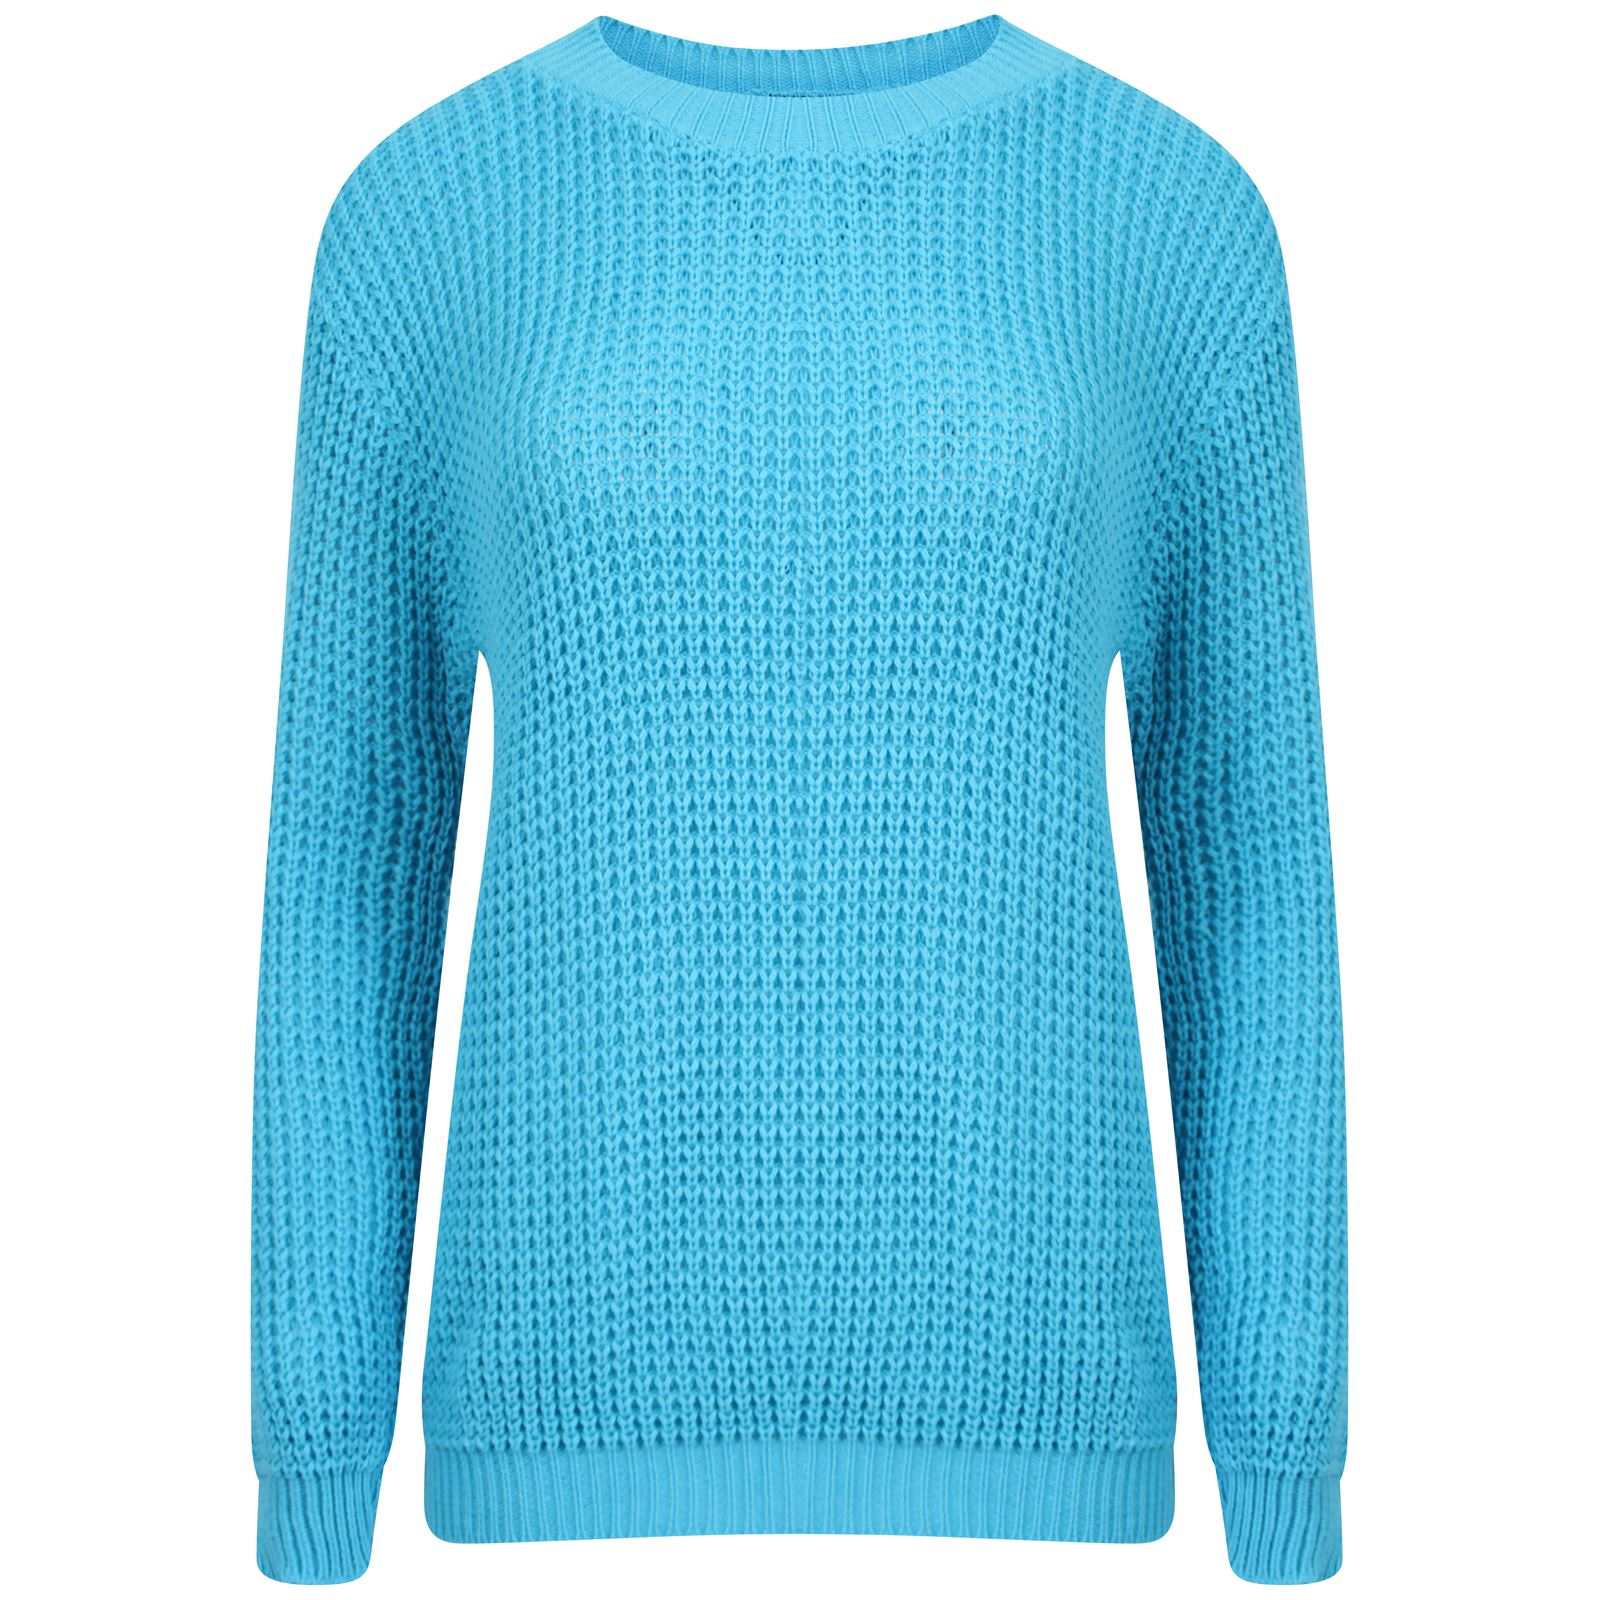 Knitting Pattern Plain Jumper : New Ladies Womens Plain Oversized Baggy Knitted Jumper Chunky Sweater Top Rib...